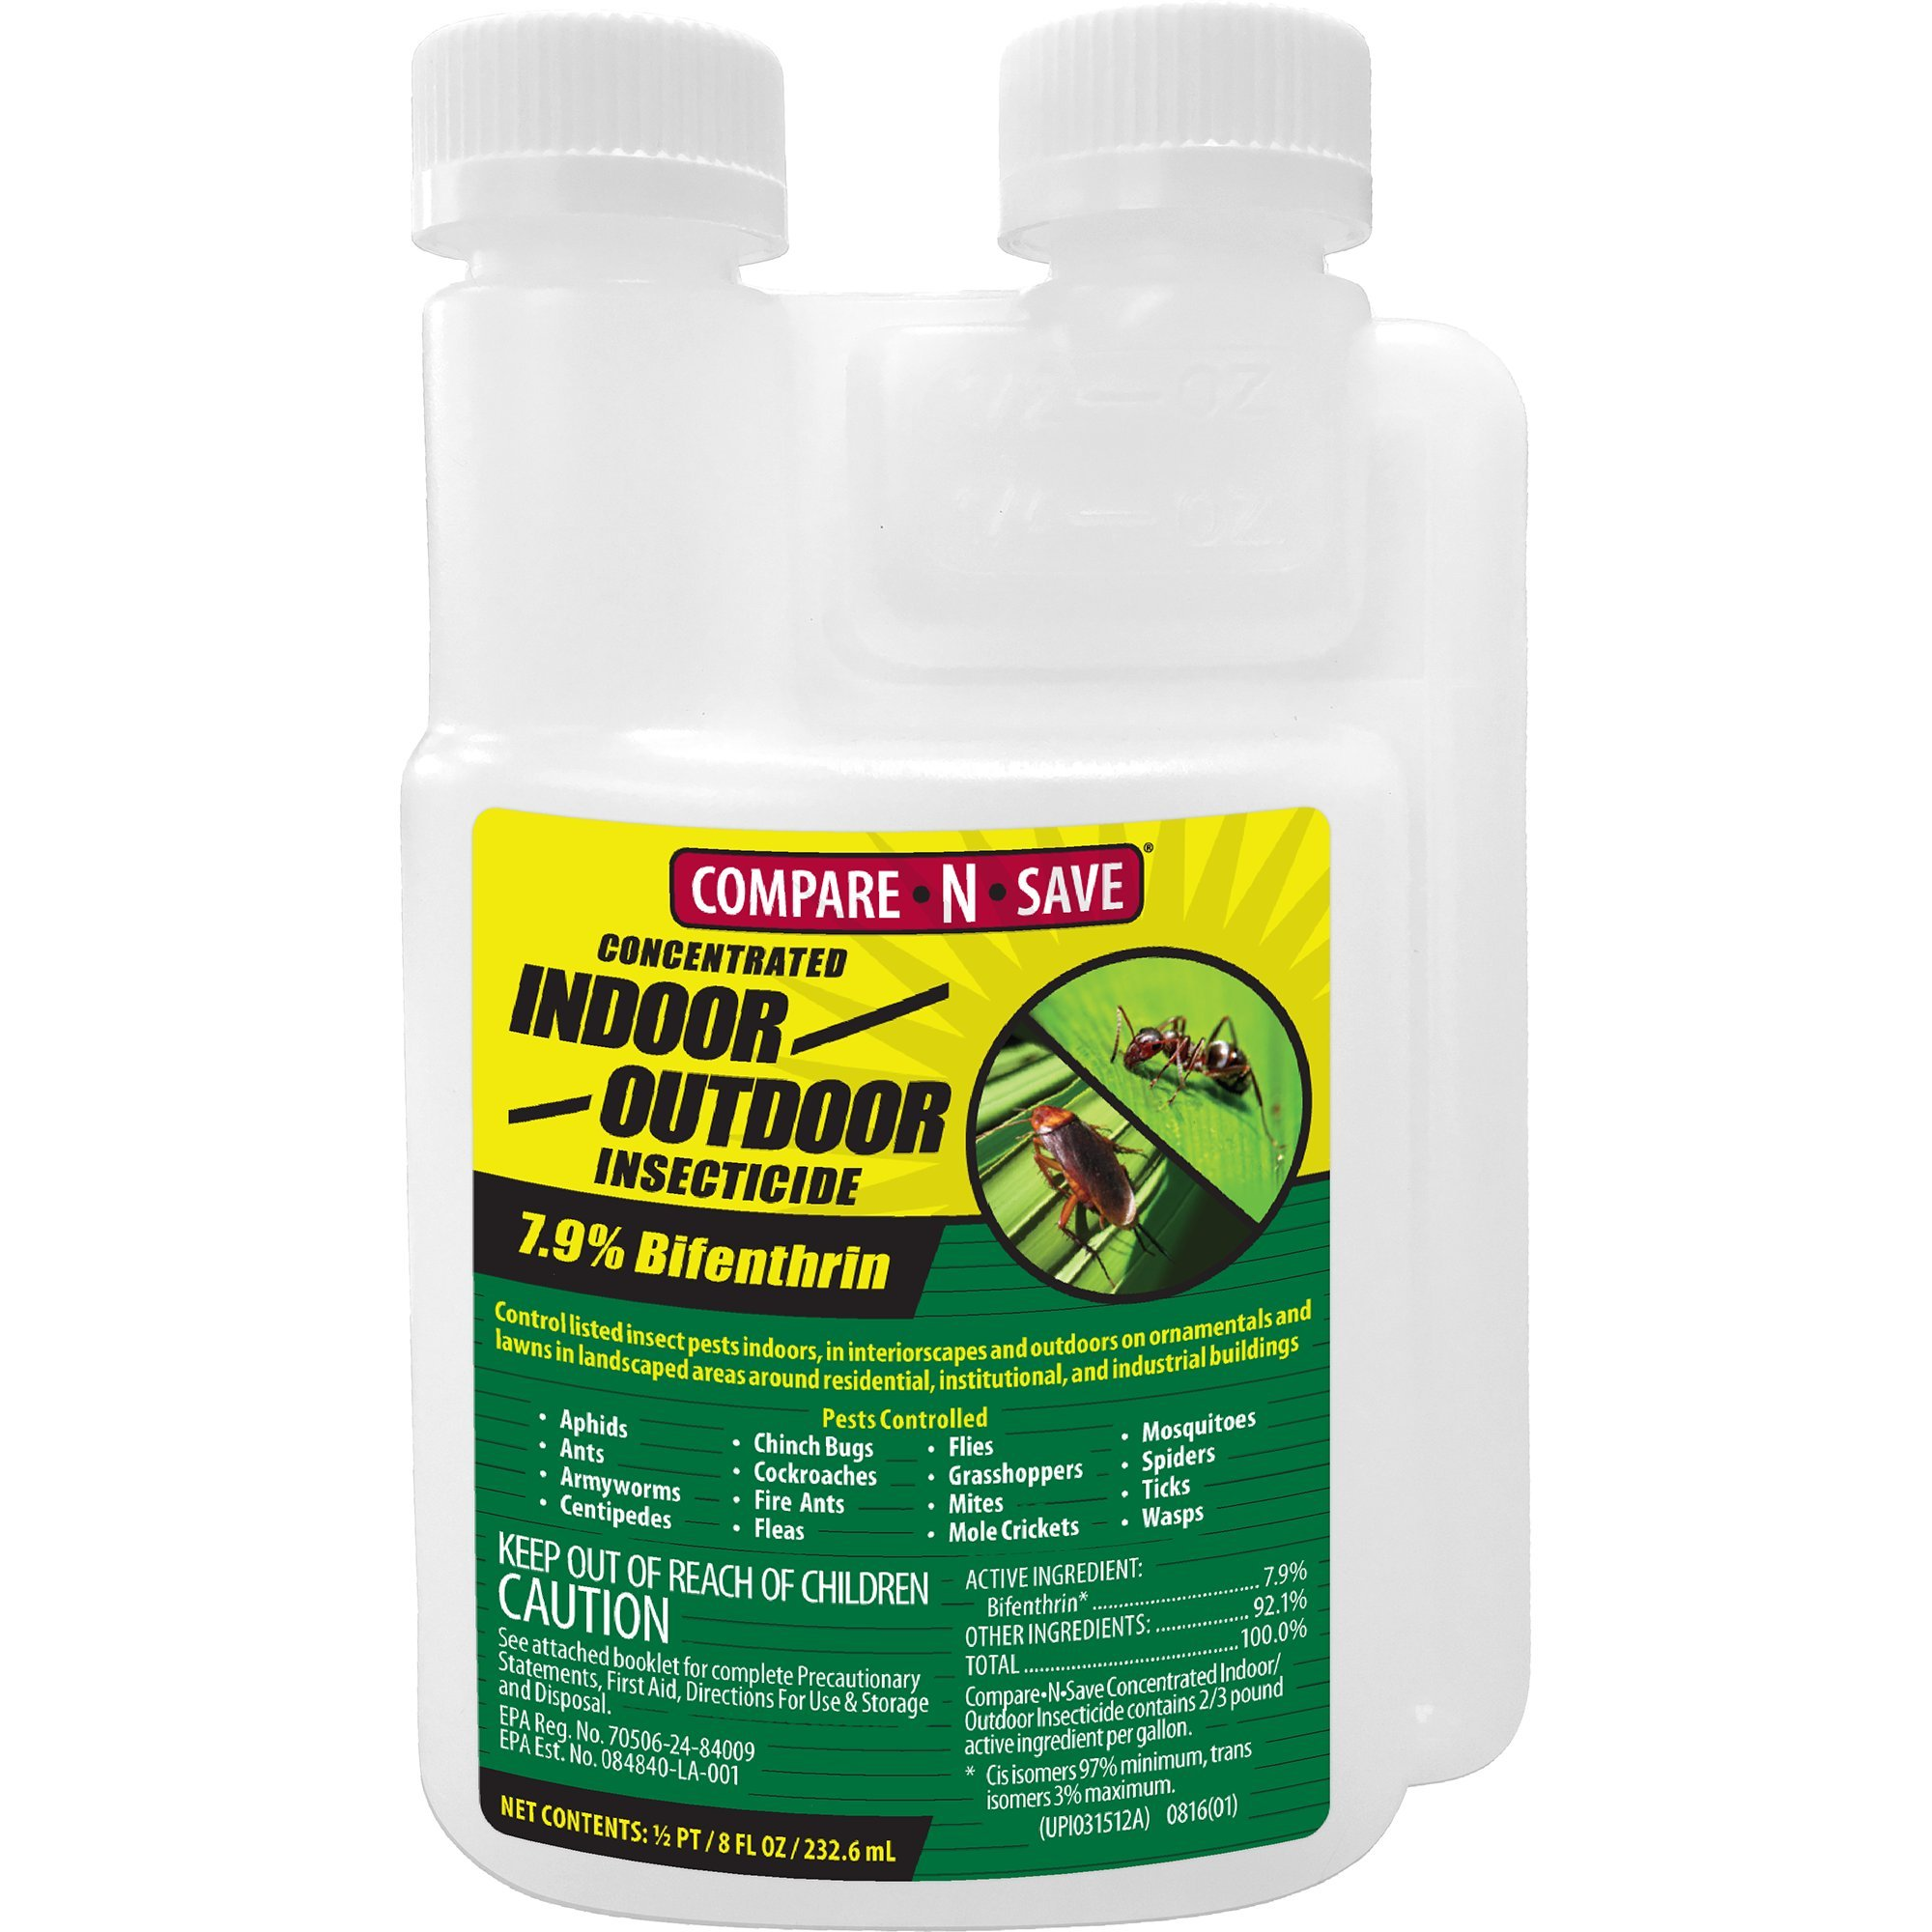 7.9% Bifenthrin Concentrate for Insect Control, 8-ounce by Compare-N-Save